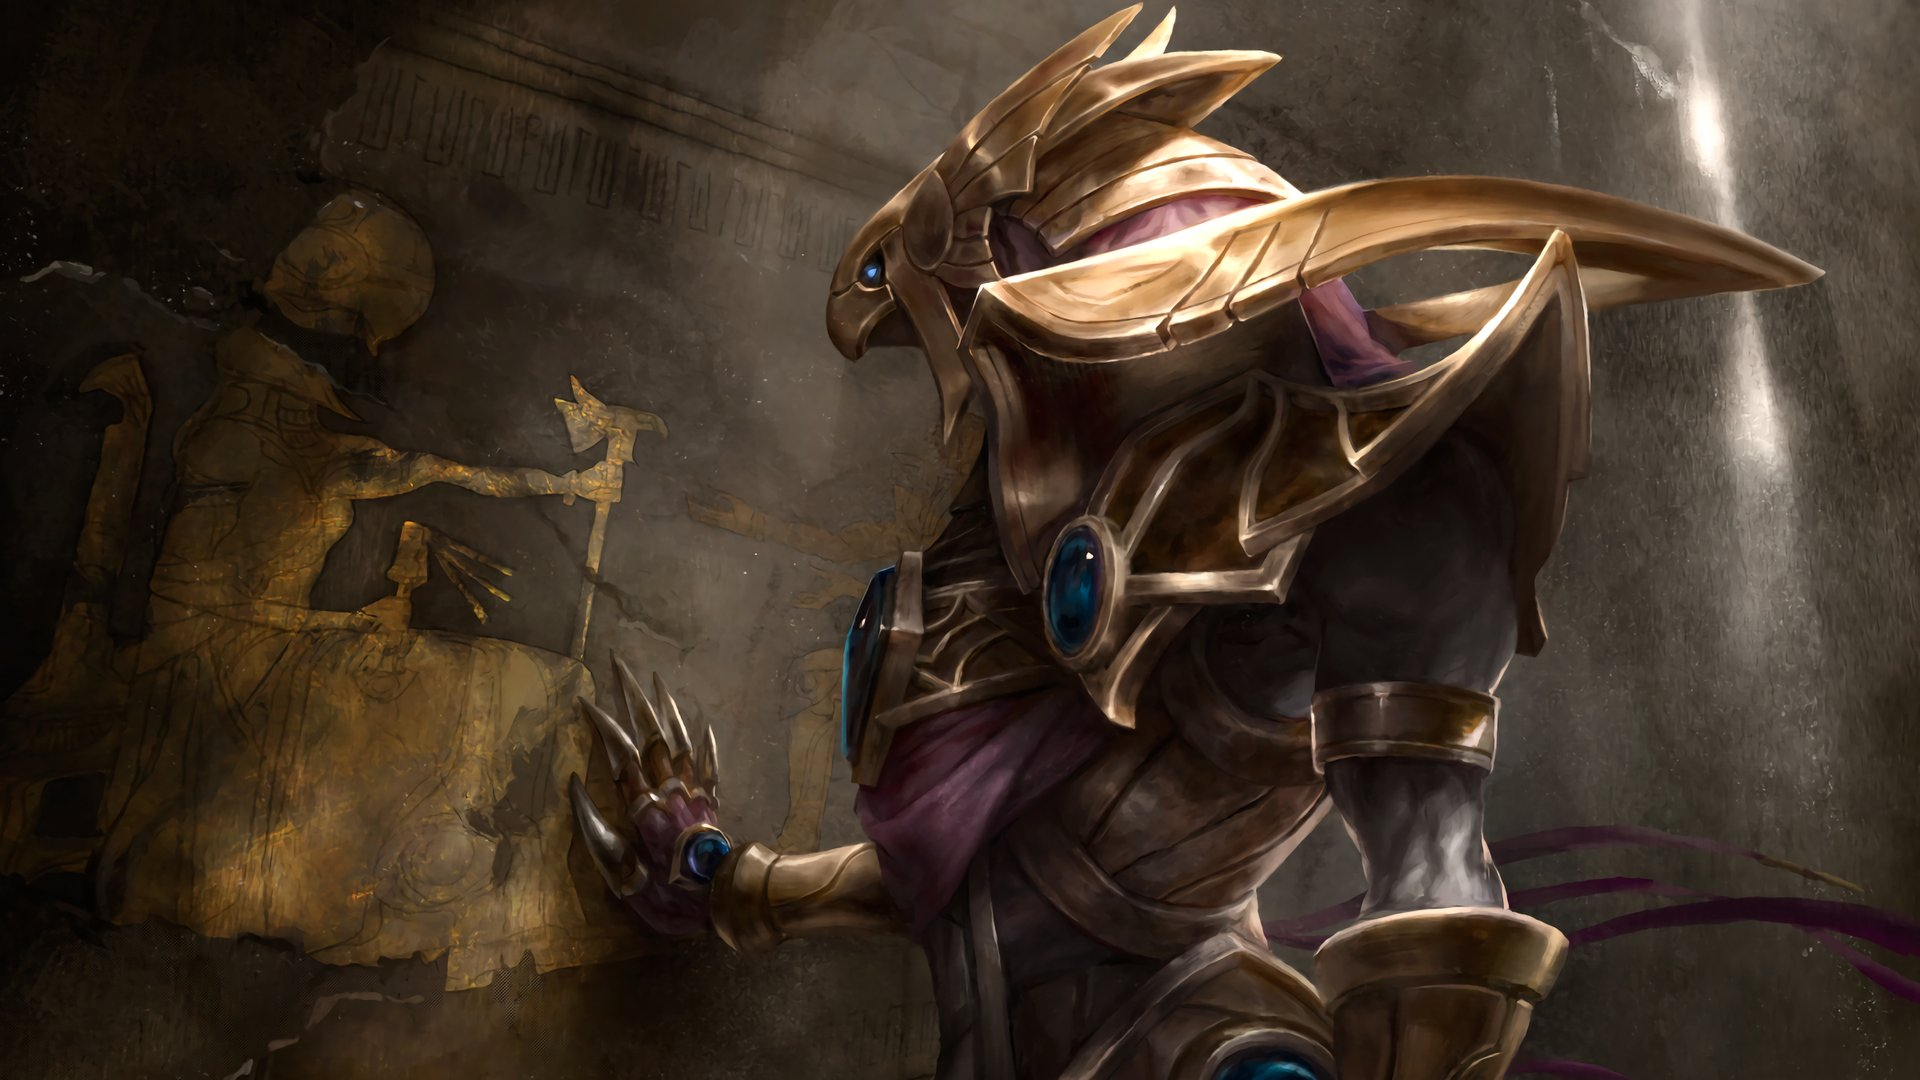 20 Azir League Of Legends Hd Wallpapers Background Images